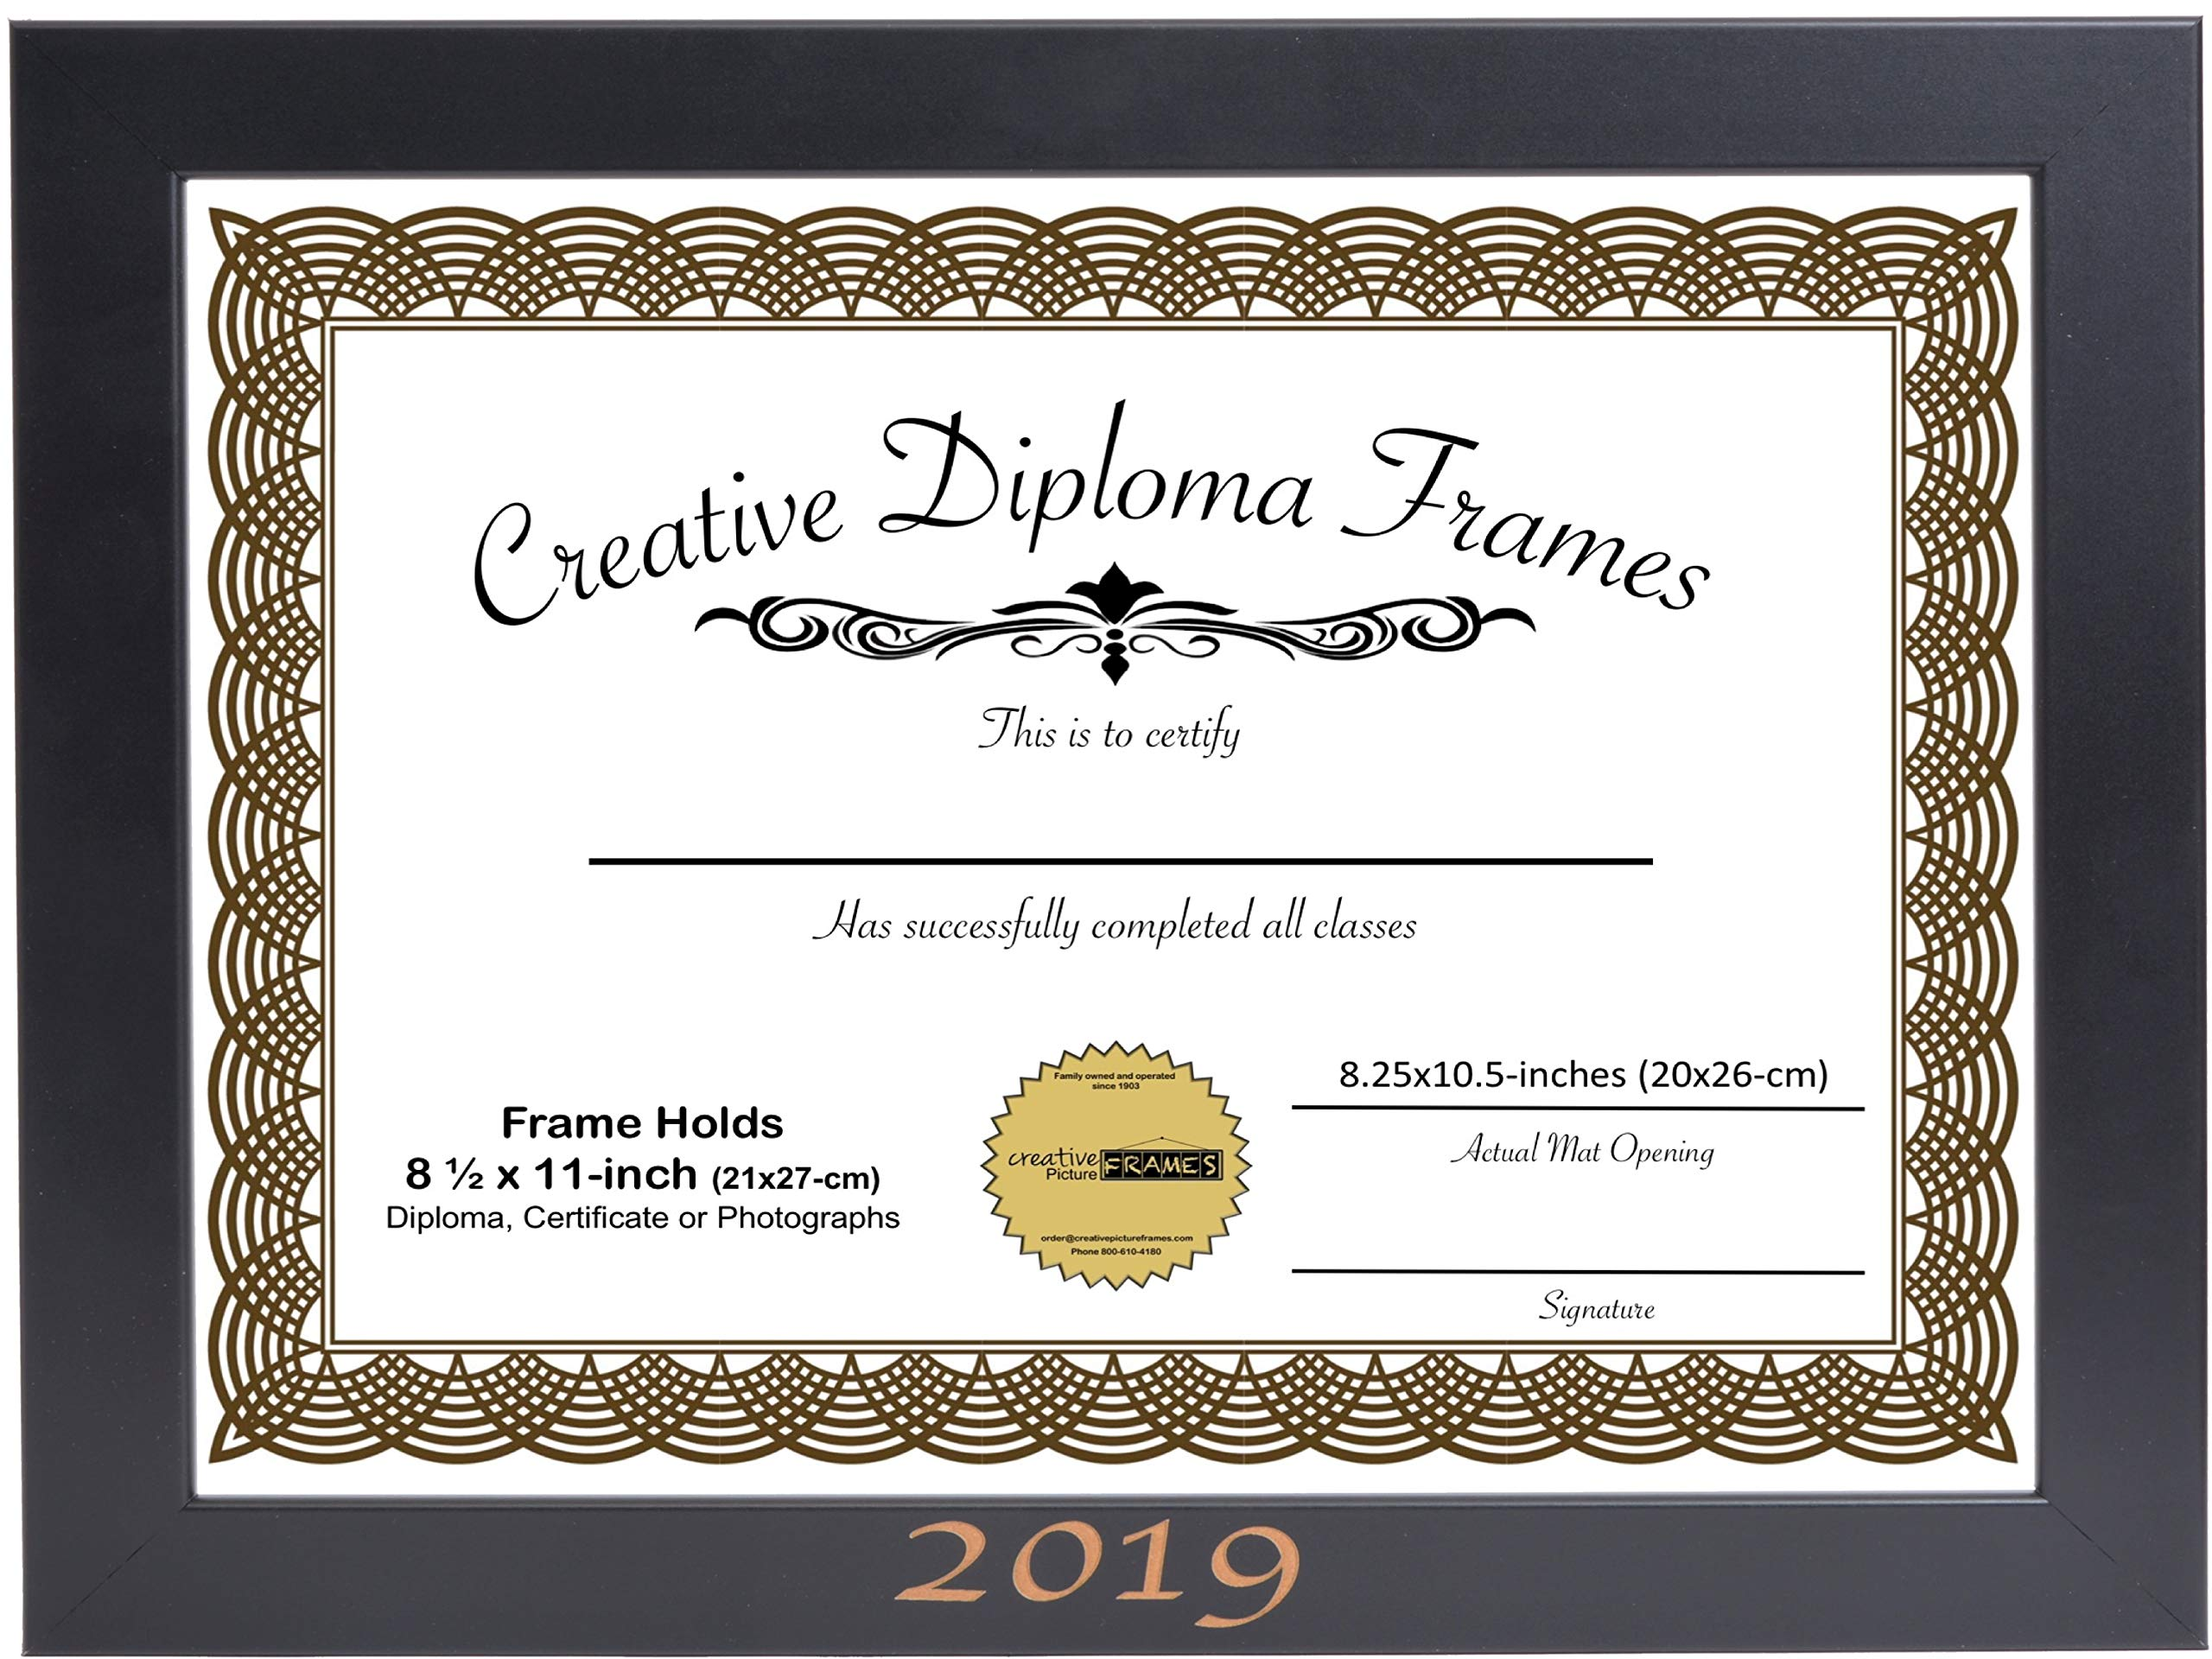 CreativePF [8.5x11bk] 2019 Black Graduation Frame with 8.5x11-inch White Mat Holds 8x10-inch Photo Media, with Stand and Installed Hangers